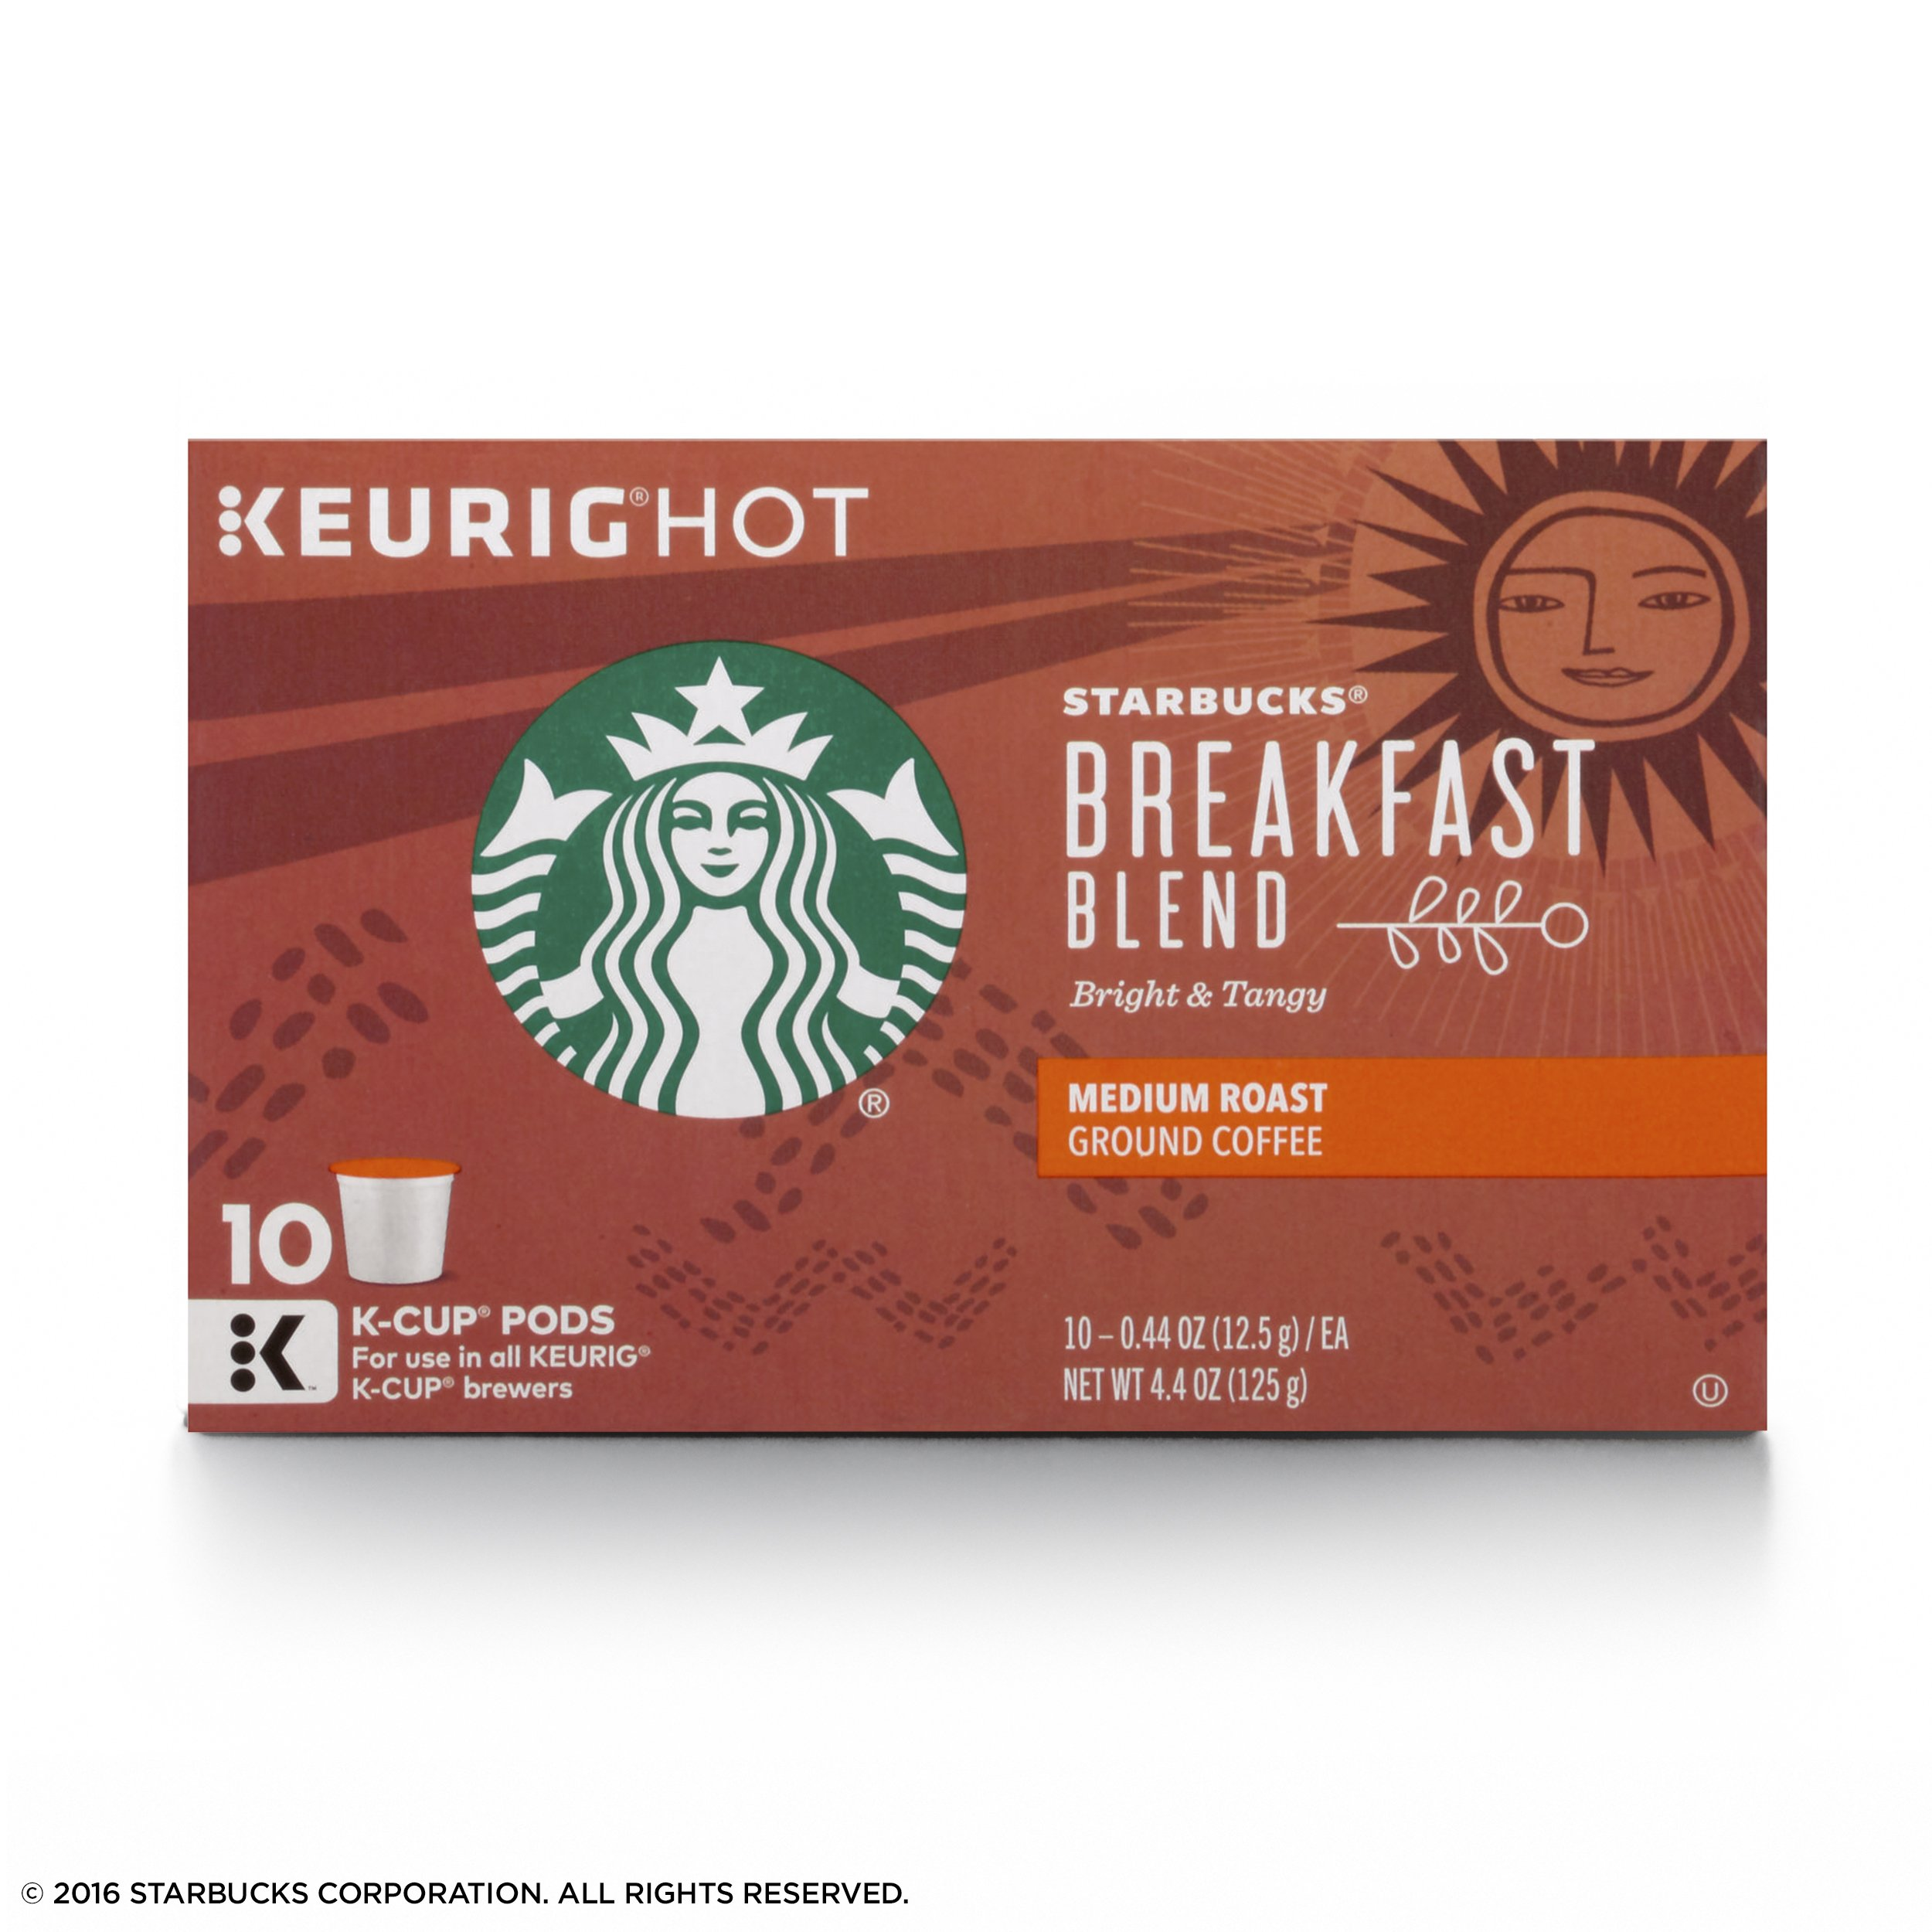 Starbucks Breakfast Blend Medium Roast Single Cup Coffee for Keurig Brewers, 6 Boxes of 10 (60 Total K-Cup pods) by Starbucks (Image #4)